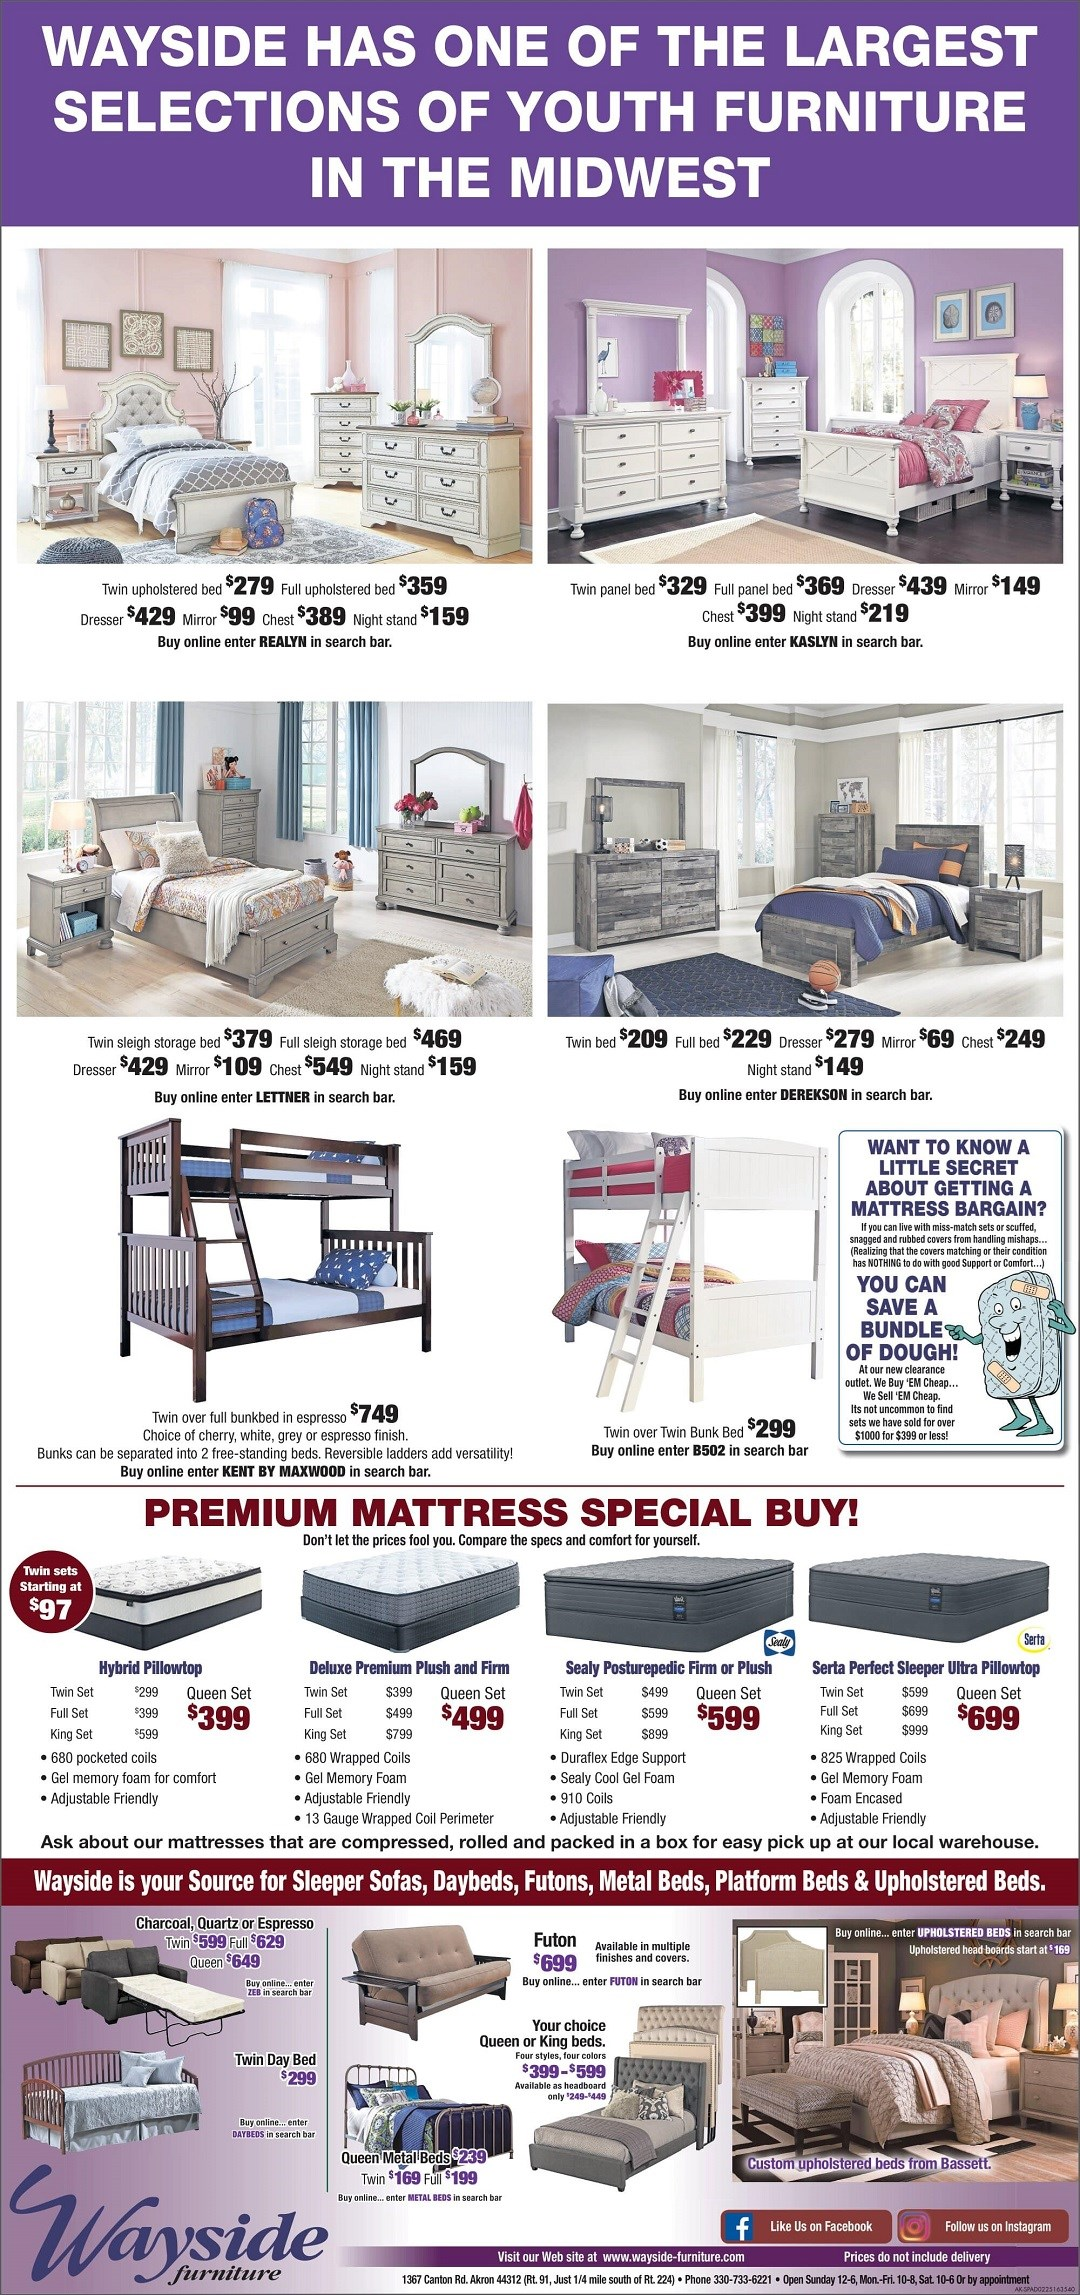 Wayside has one of the largest selections of youth furniture, mattress, futons, daybeds, sleeper sofas and upholstered beds in the Midwest